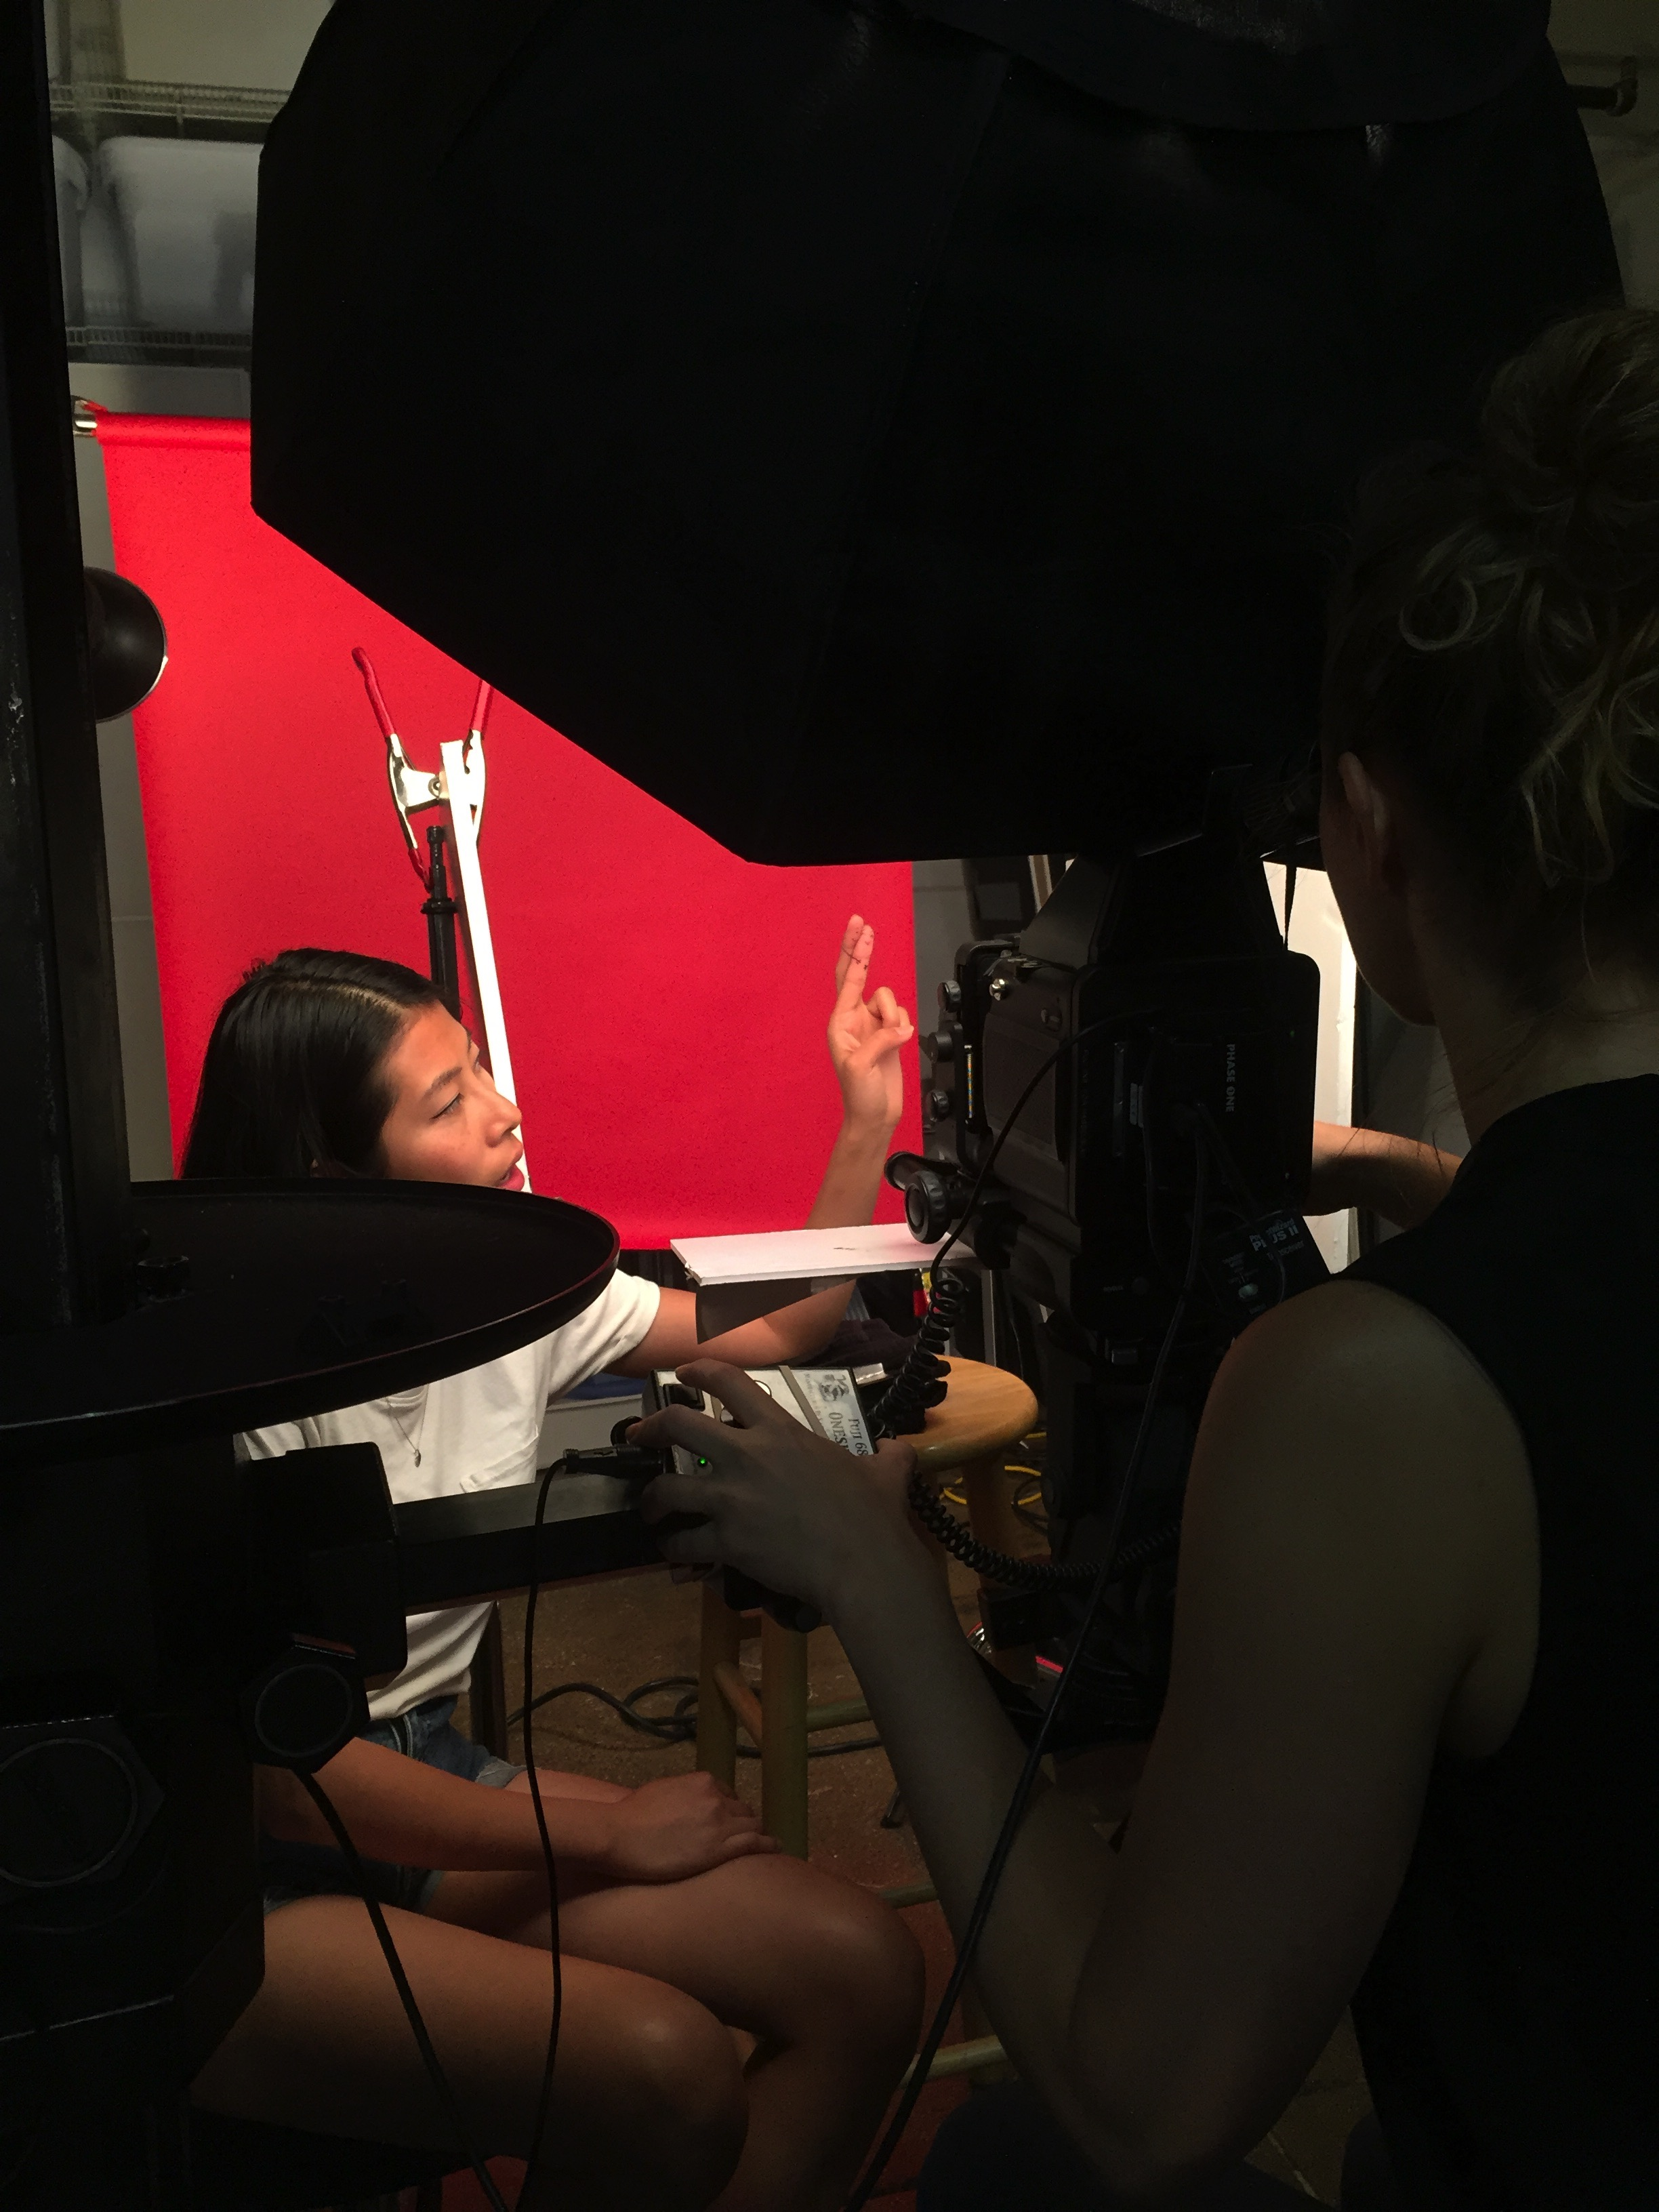 BEHIND THE SCENES OF THE PHOTO SHOOT WITH  CHRISTINE BLACKBURNE  :